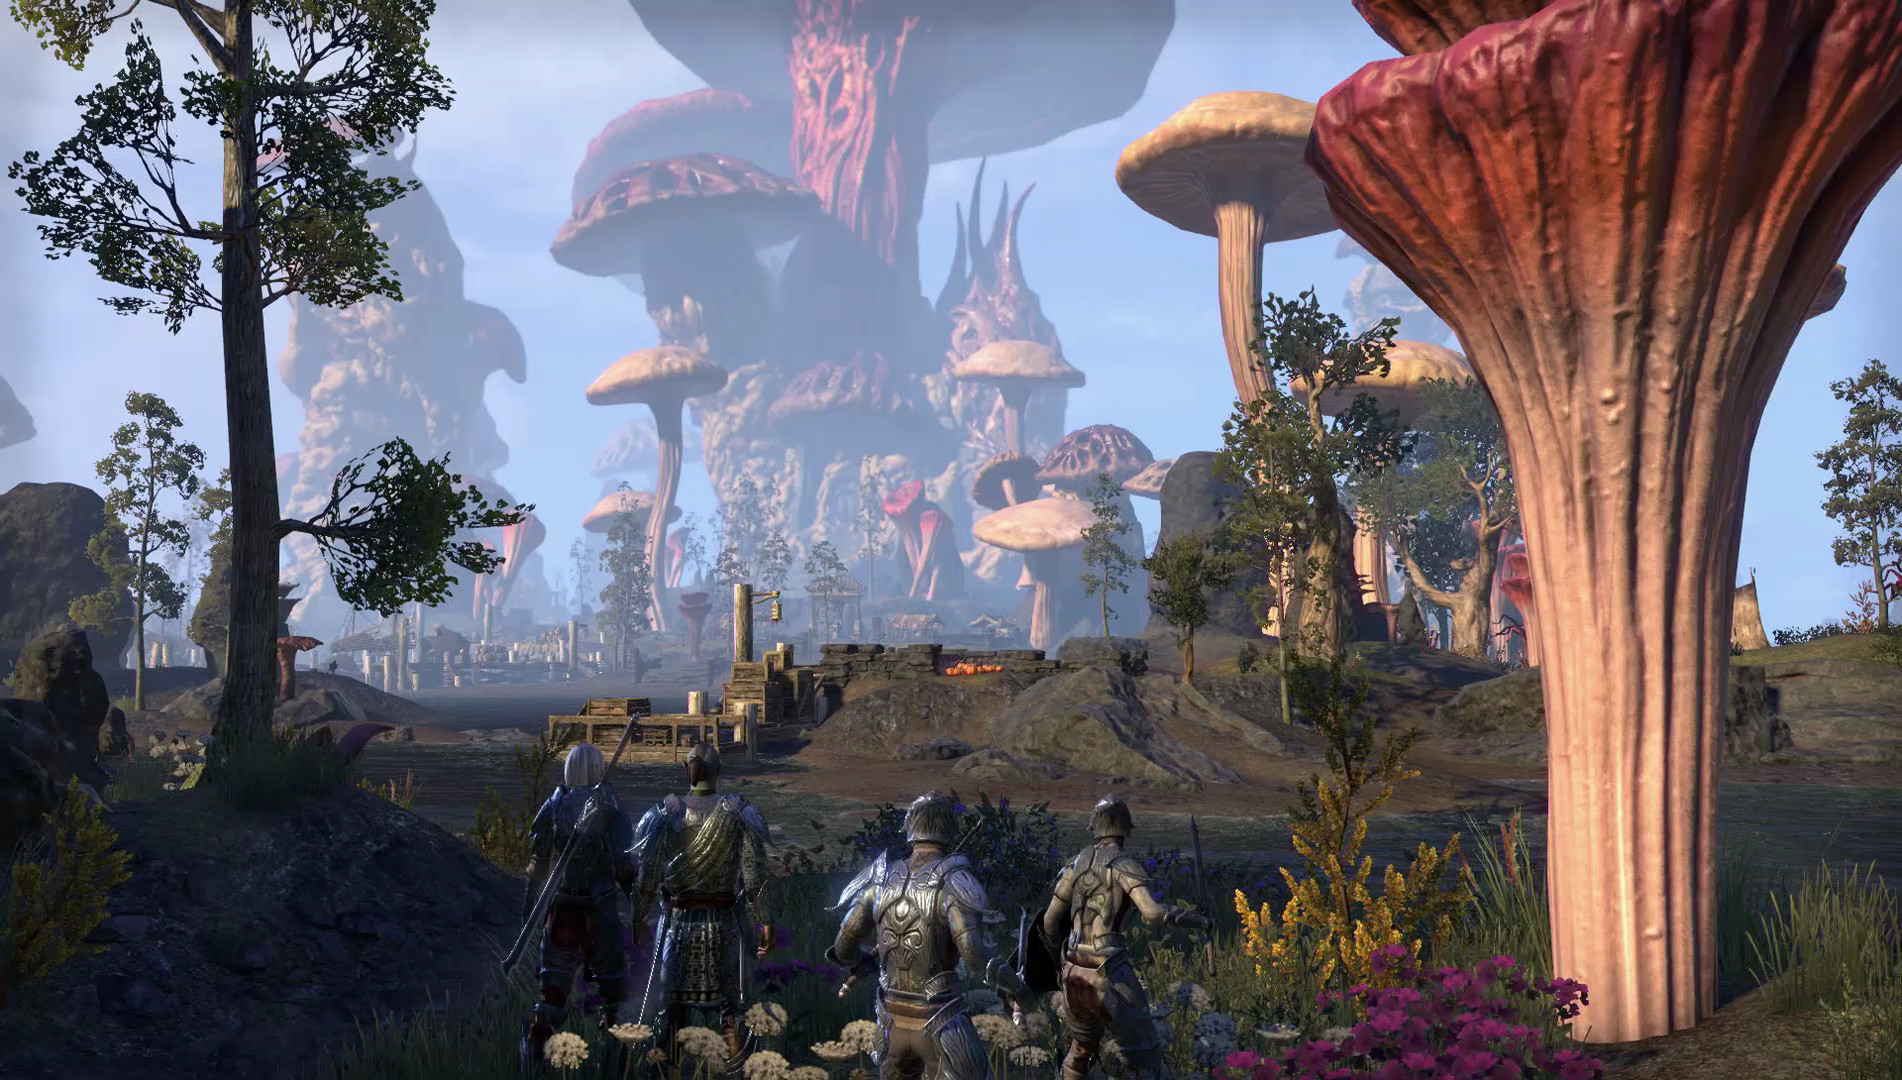 Elder Scrolls Online's Morrowind Expansion Opens Early To Some On PC